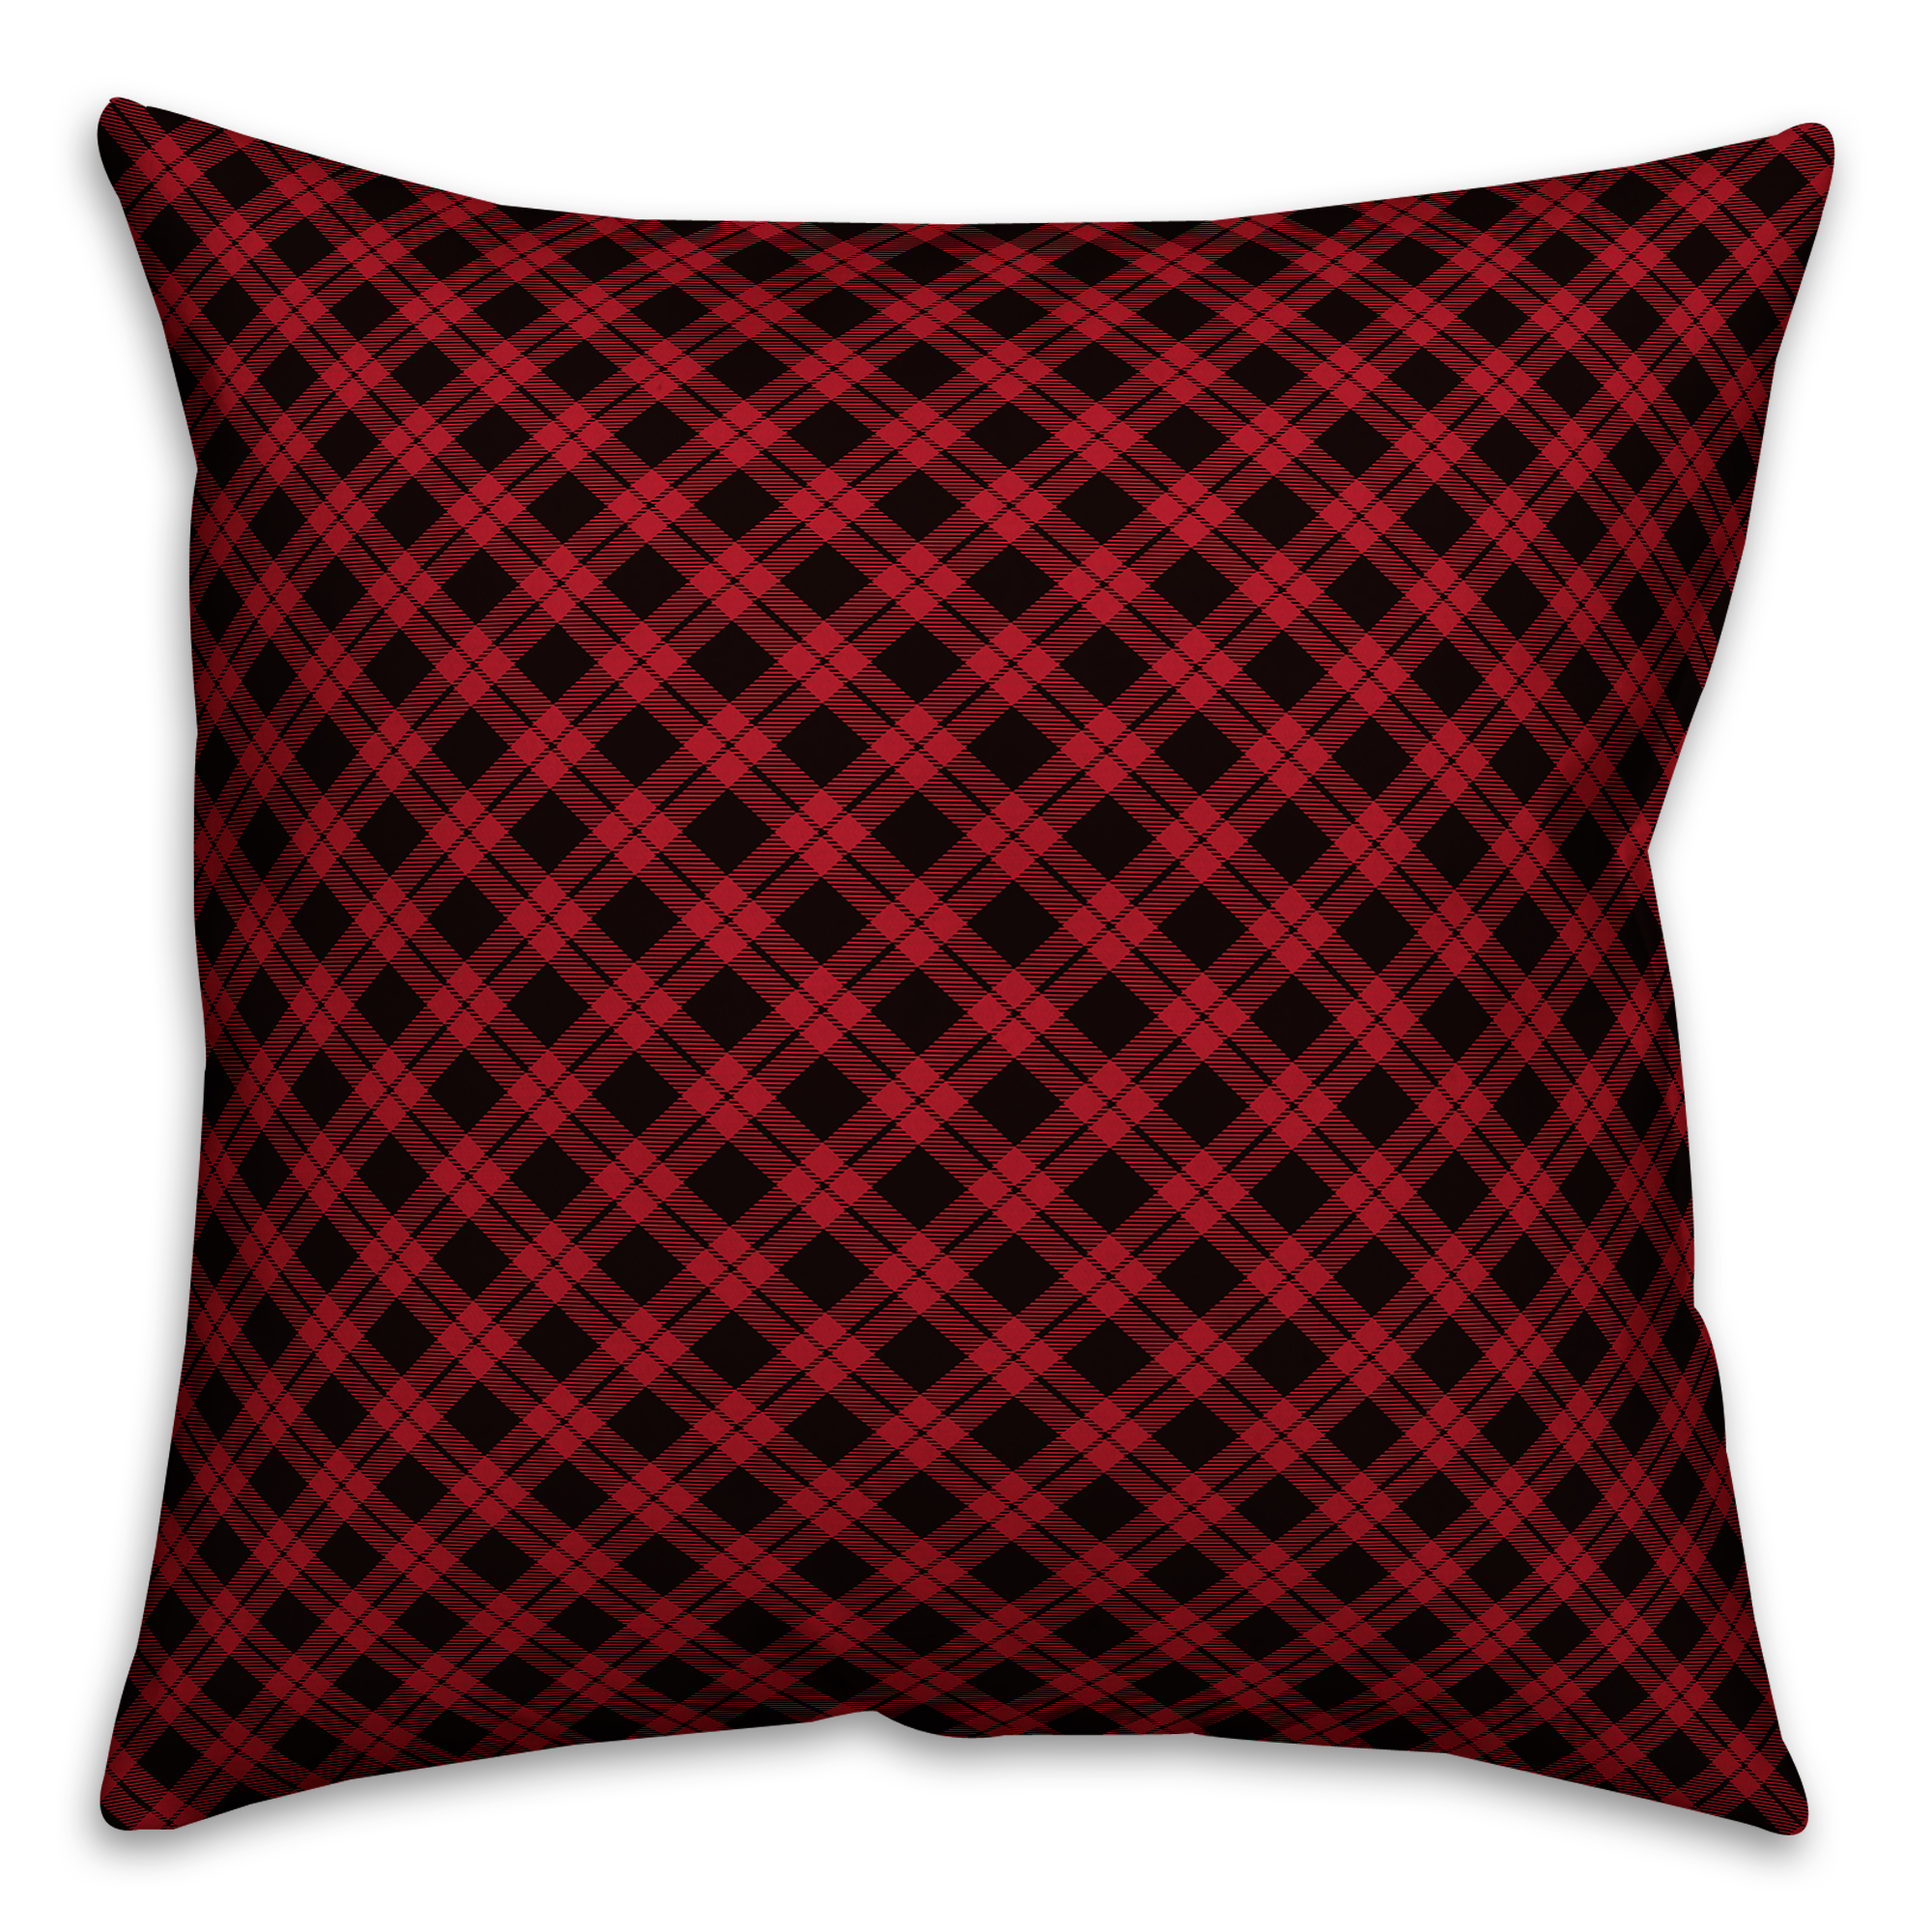 Red and Black Gingham Buffalo Check Plaid 18x18 Spun Poly Pillow Cover